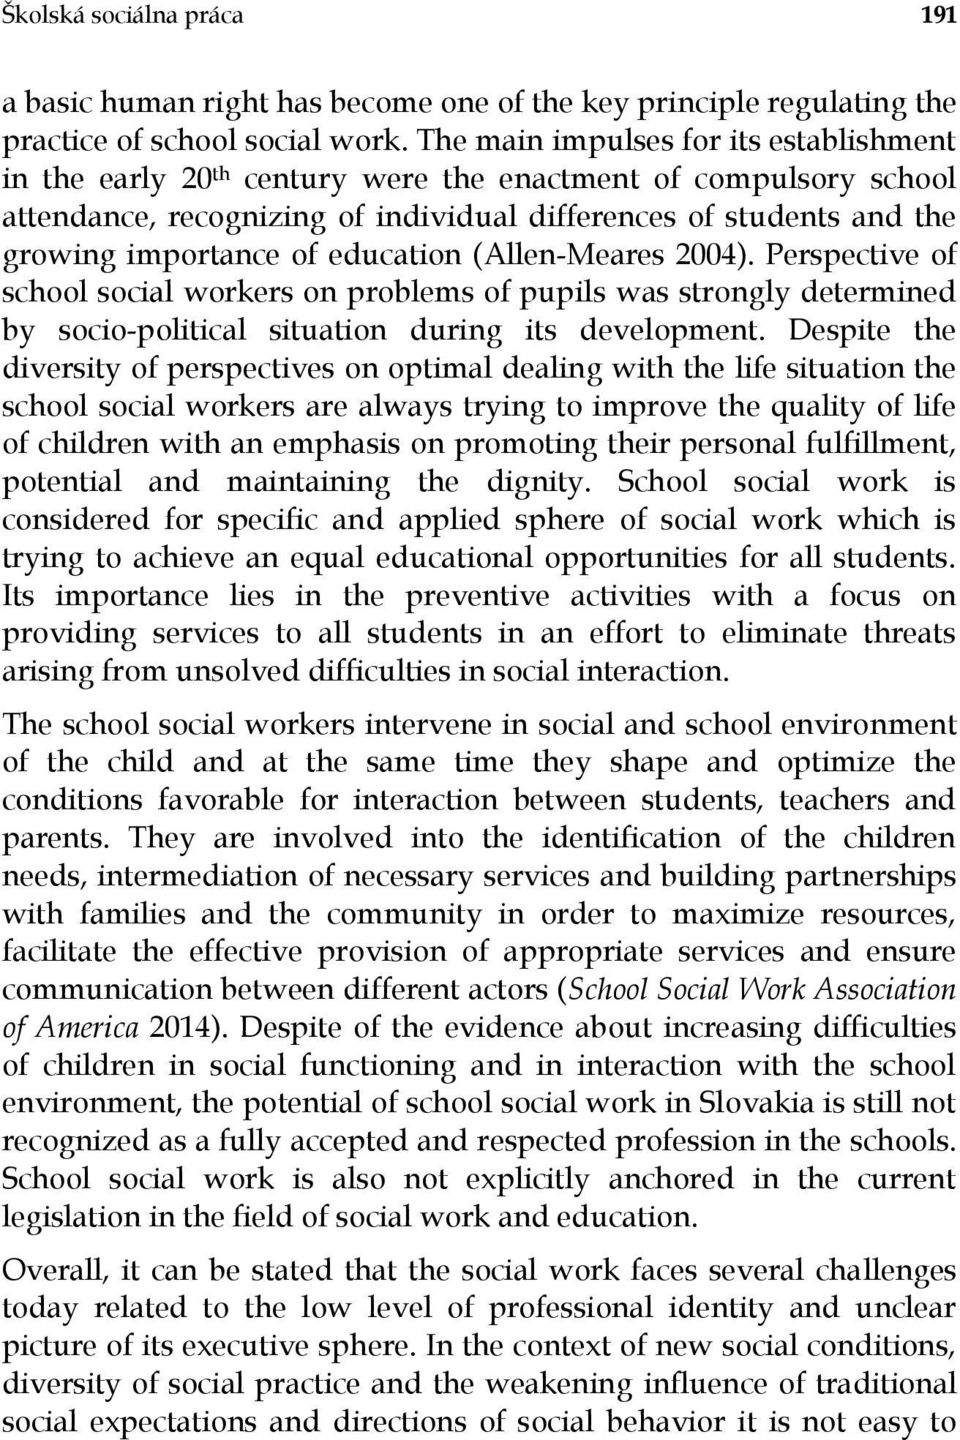 education (Allen-Meares 2004). Perspective of school social workers on problems of pupils was strongly determined by socio-political situation during its development.